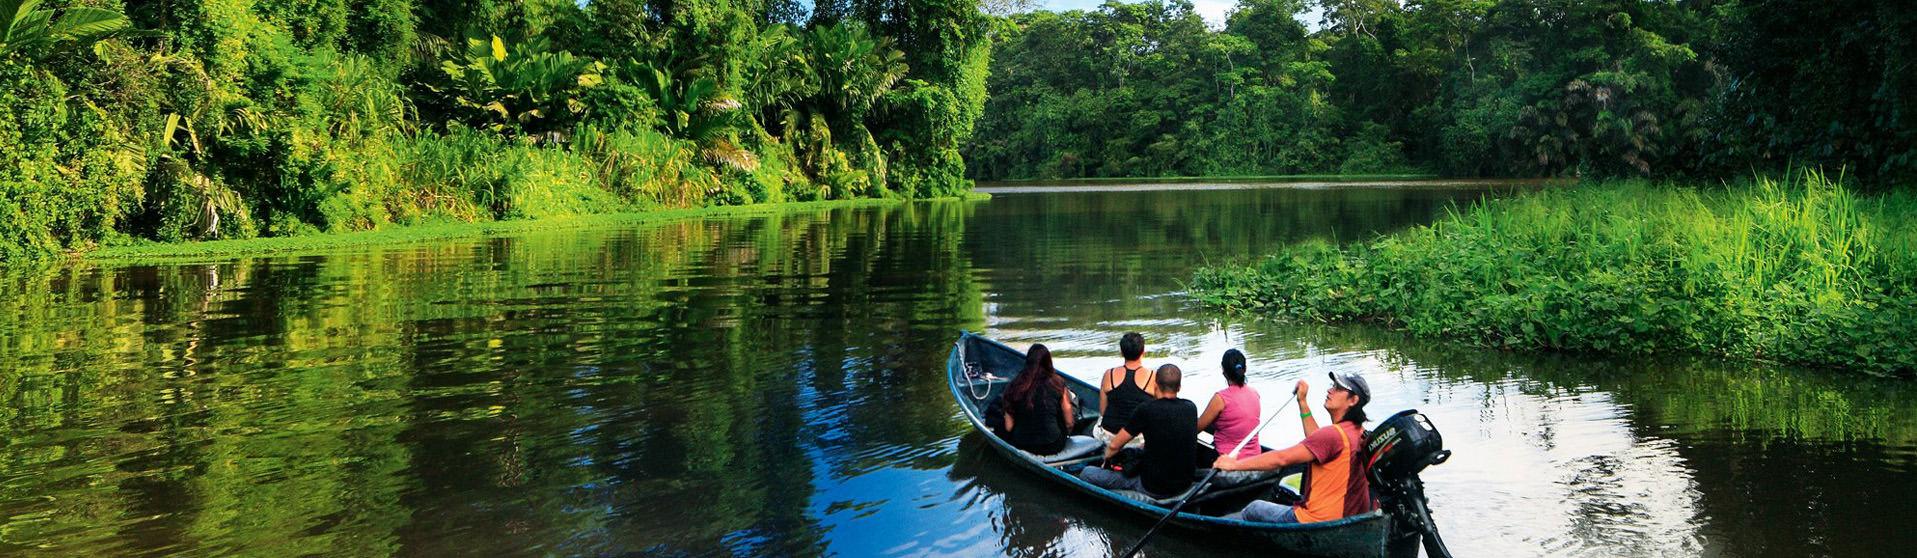 4-DAY TORTUGUERO + PACUARE OVERNIGHT